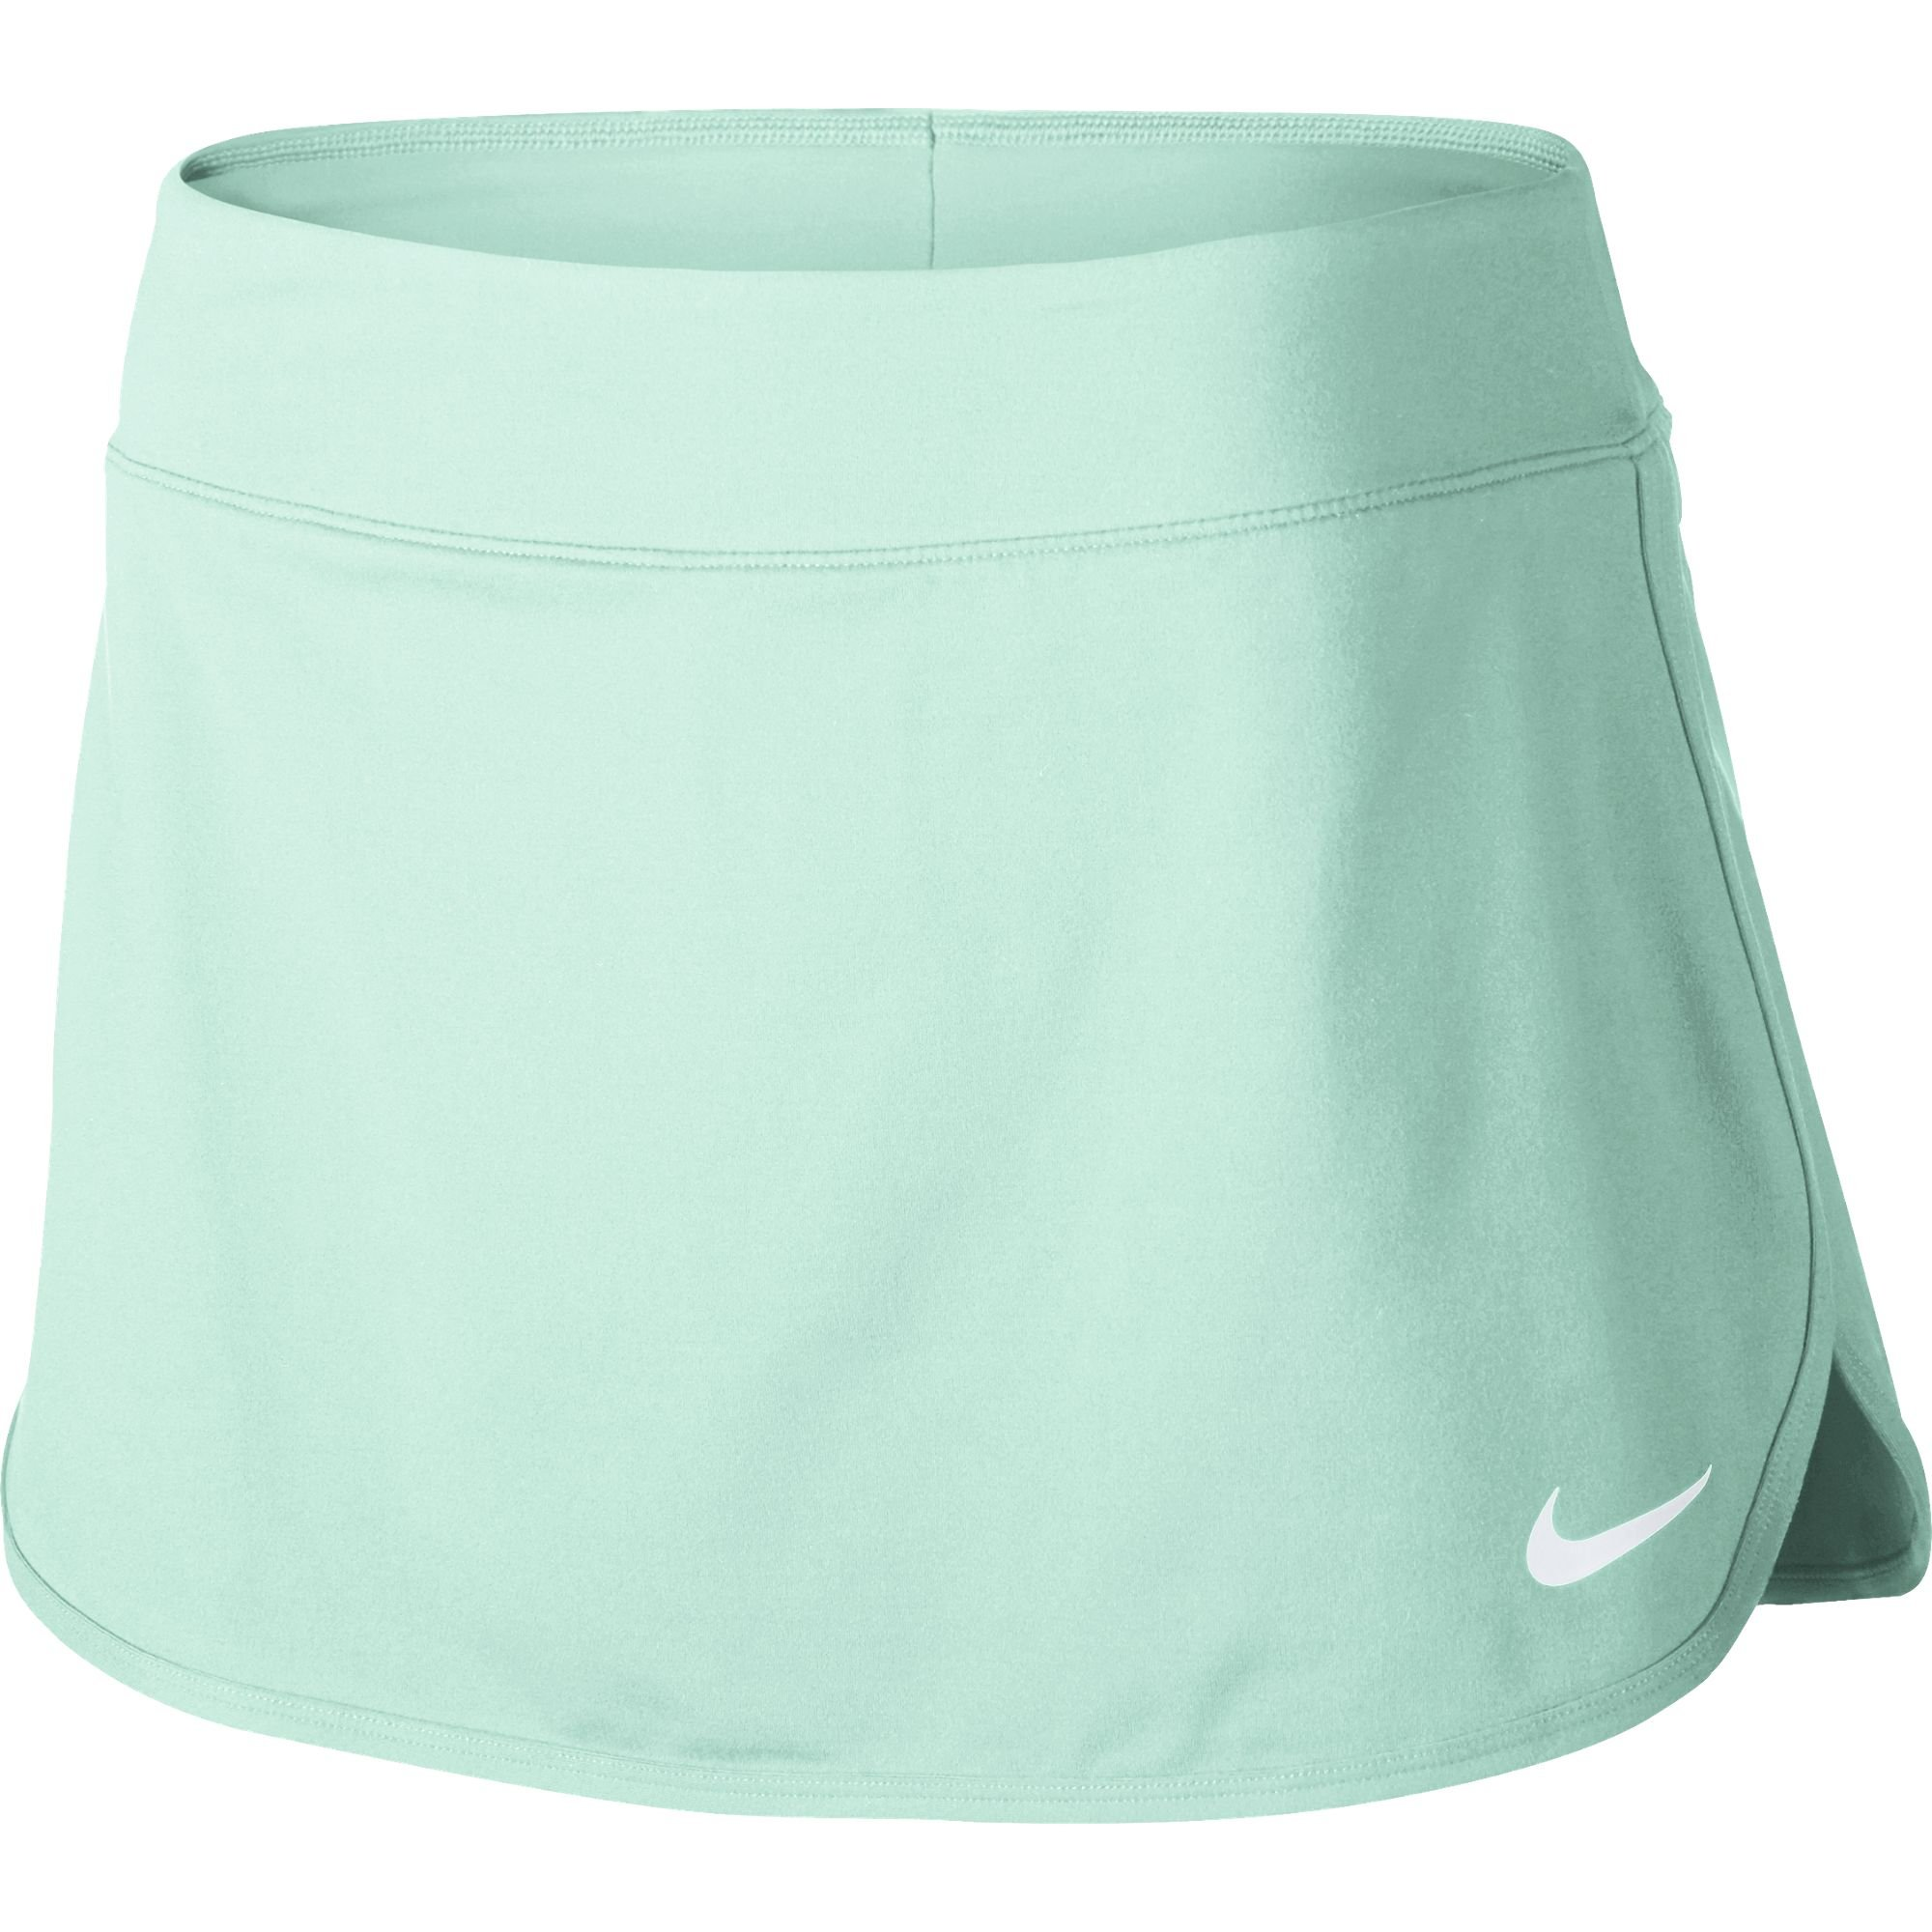 W NKCT Pure Skirt Women's Tennis Skirt, Igloo/White, Small